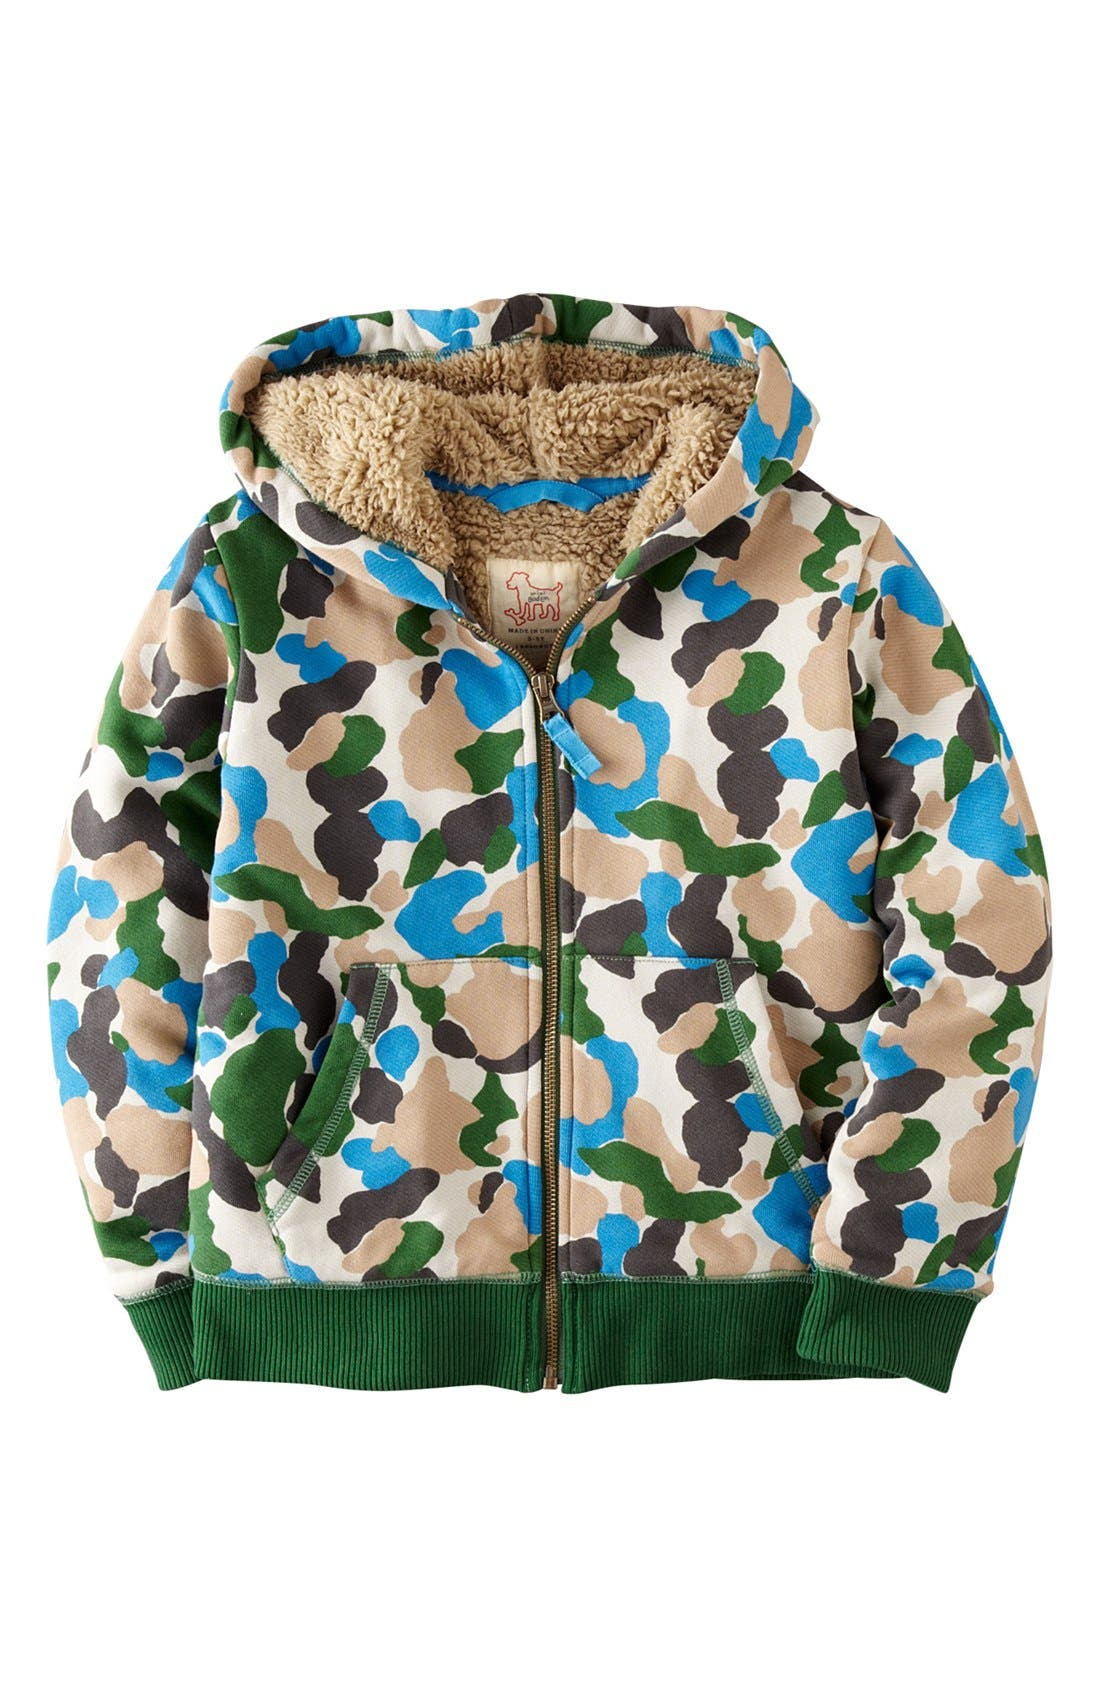 Alternate Image 1 Selected - Mini Boden 'Shaggy' Hoodie (Toddler Boys, Little Boys & Big Boys)